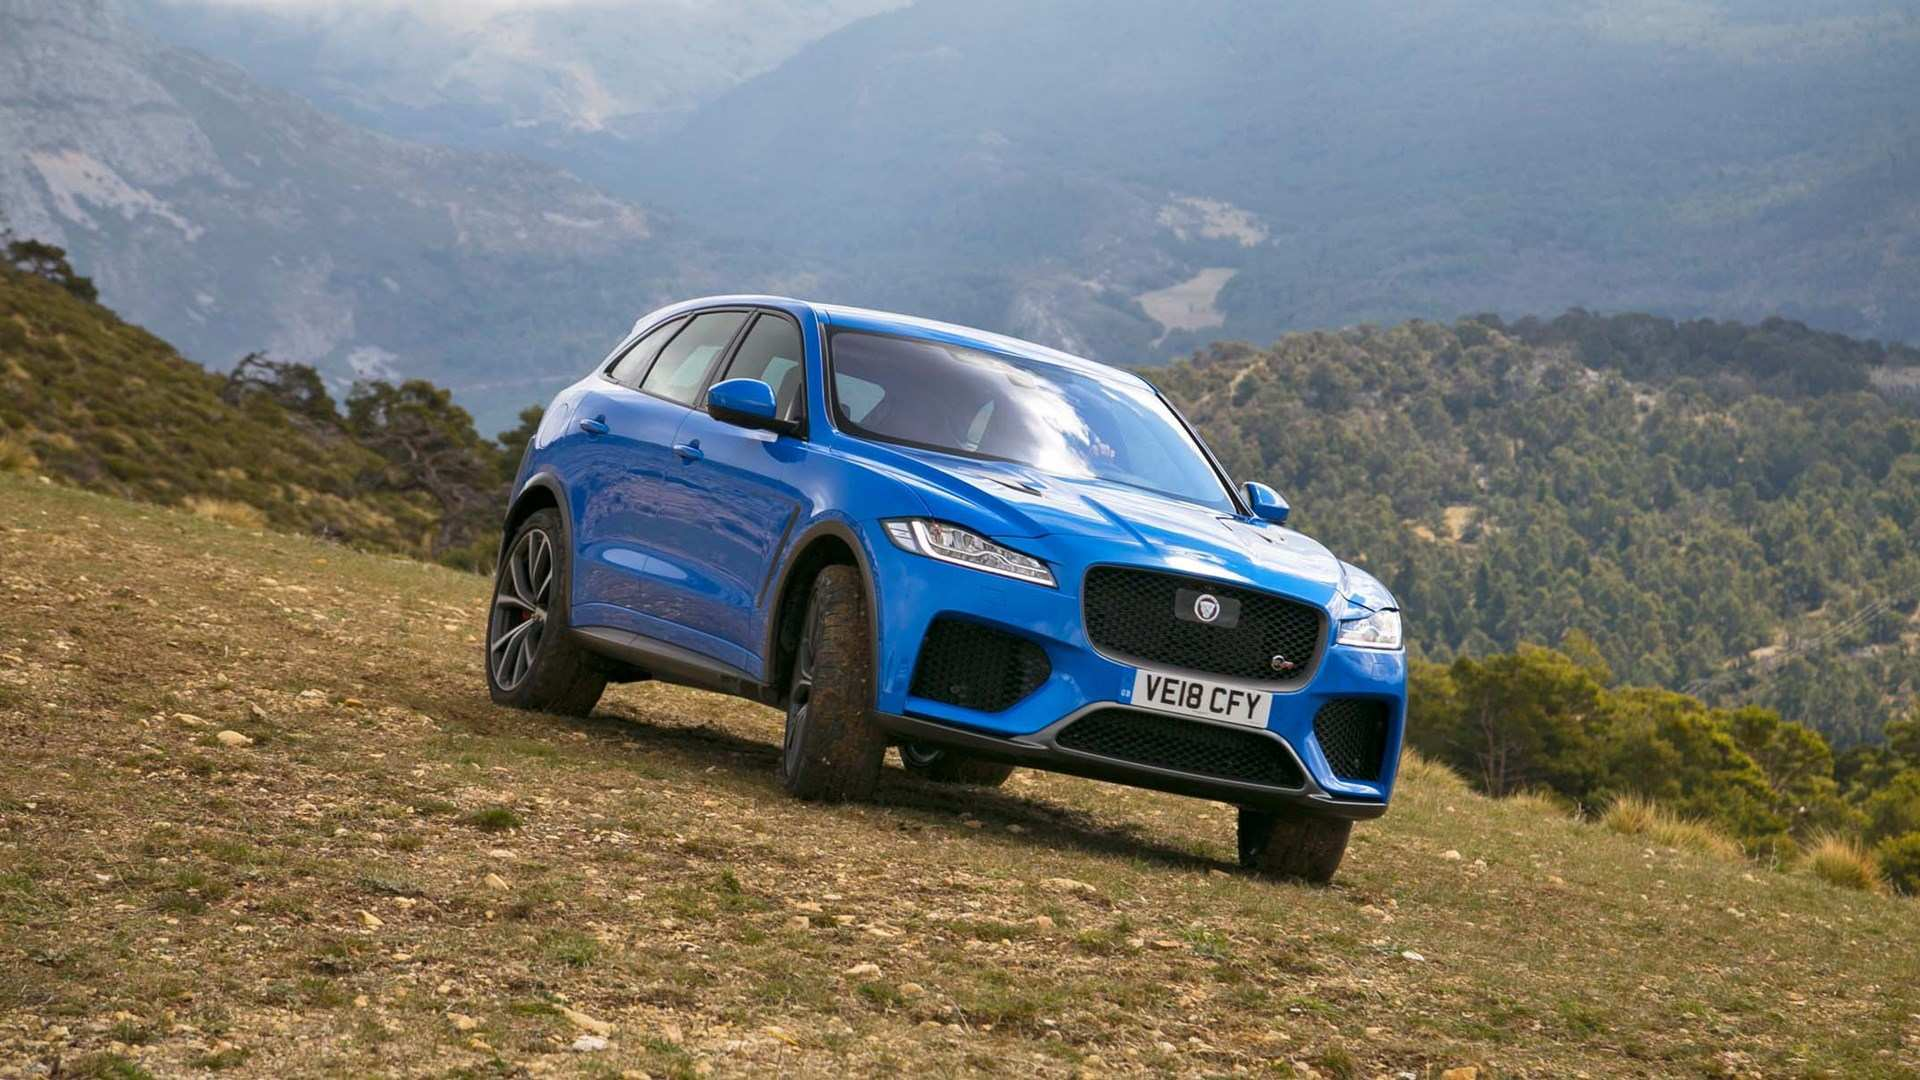 76 The Best Jaguar I Pace 2020 Model 2 Redesign And Concept